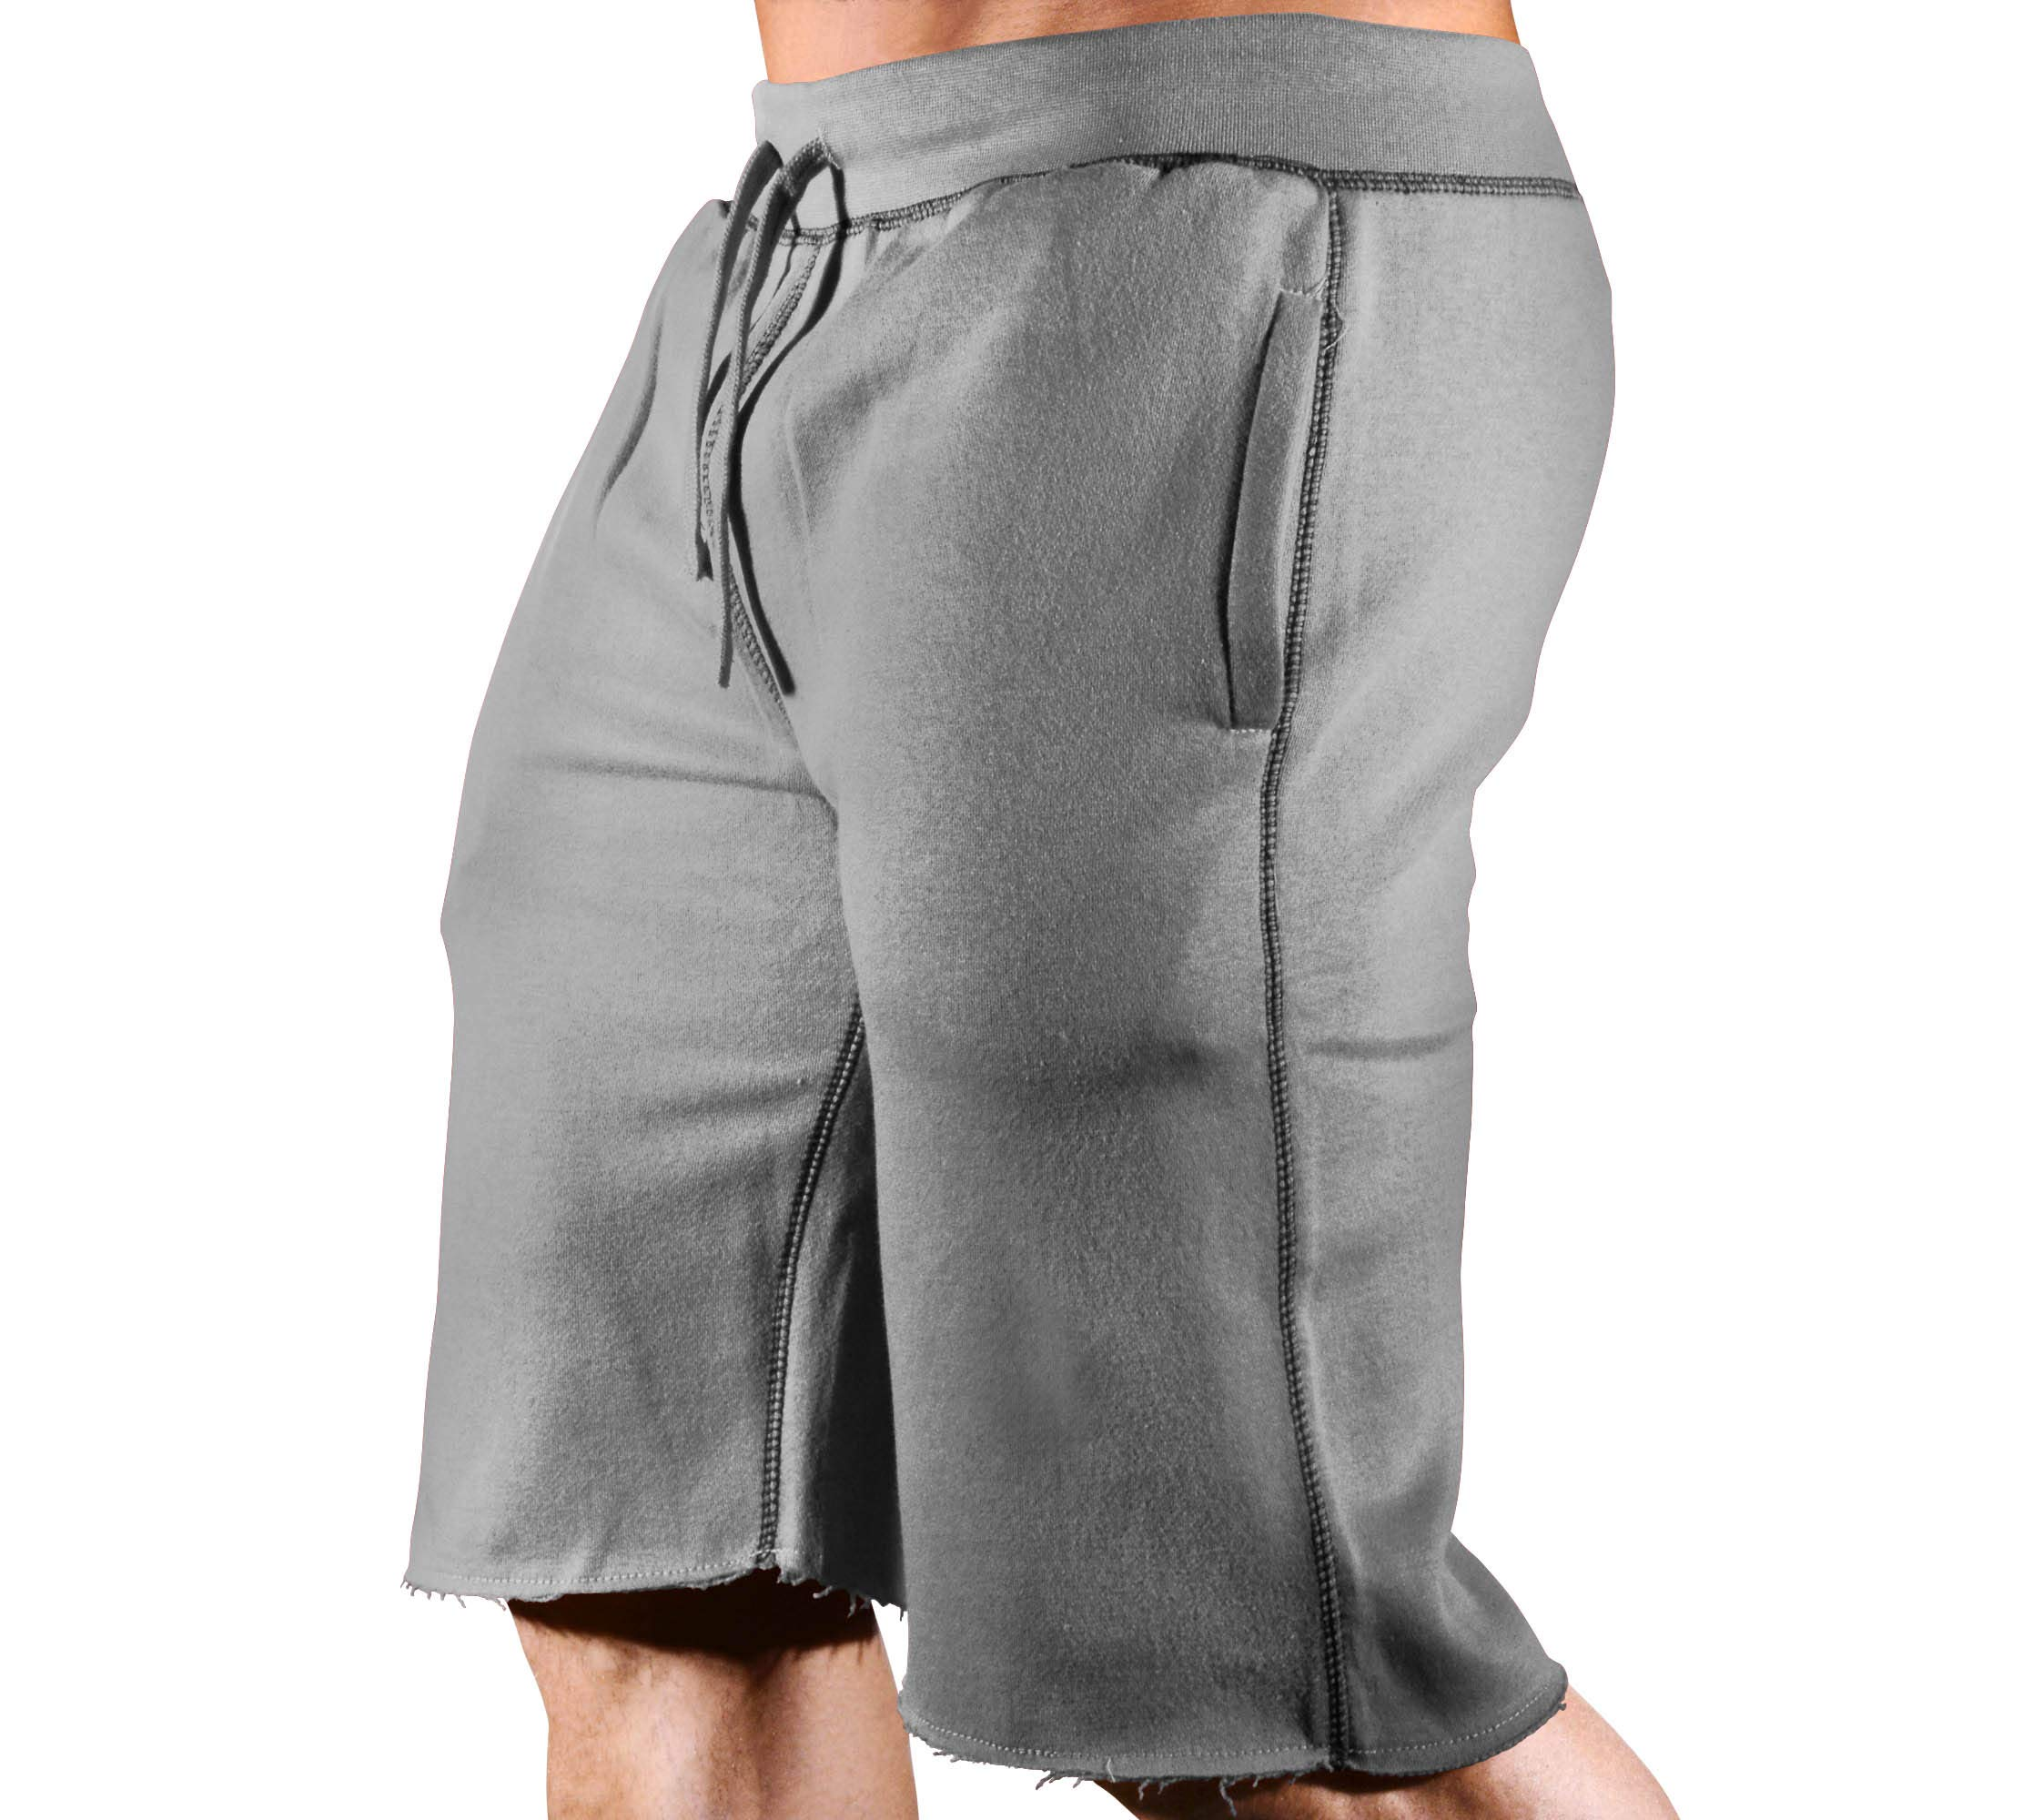 HRD LVN Mens Workout Shorts Classic (X-Large, Charcoal & Black Sweat Shorts) by Monsta Clothing Co.